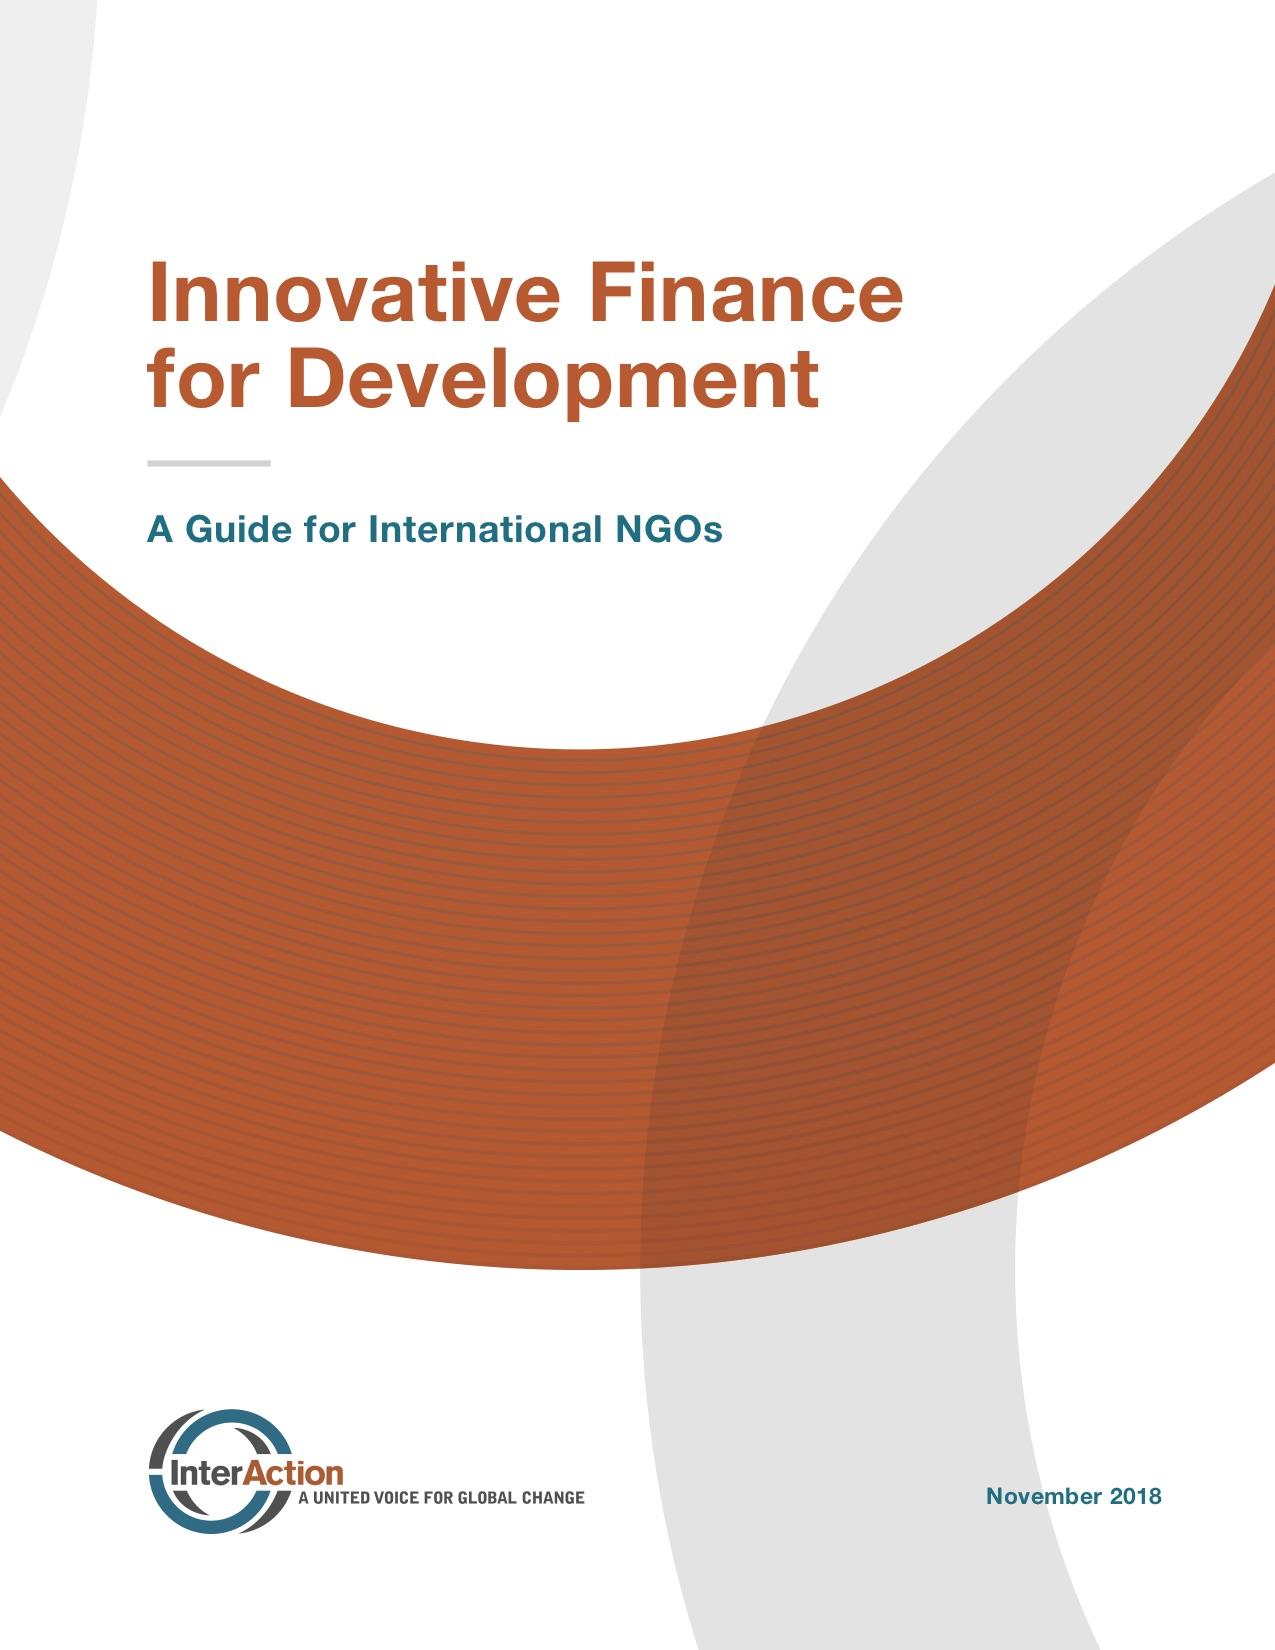 Innovative Finance for Development: A Guide for International NGOs